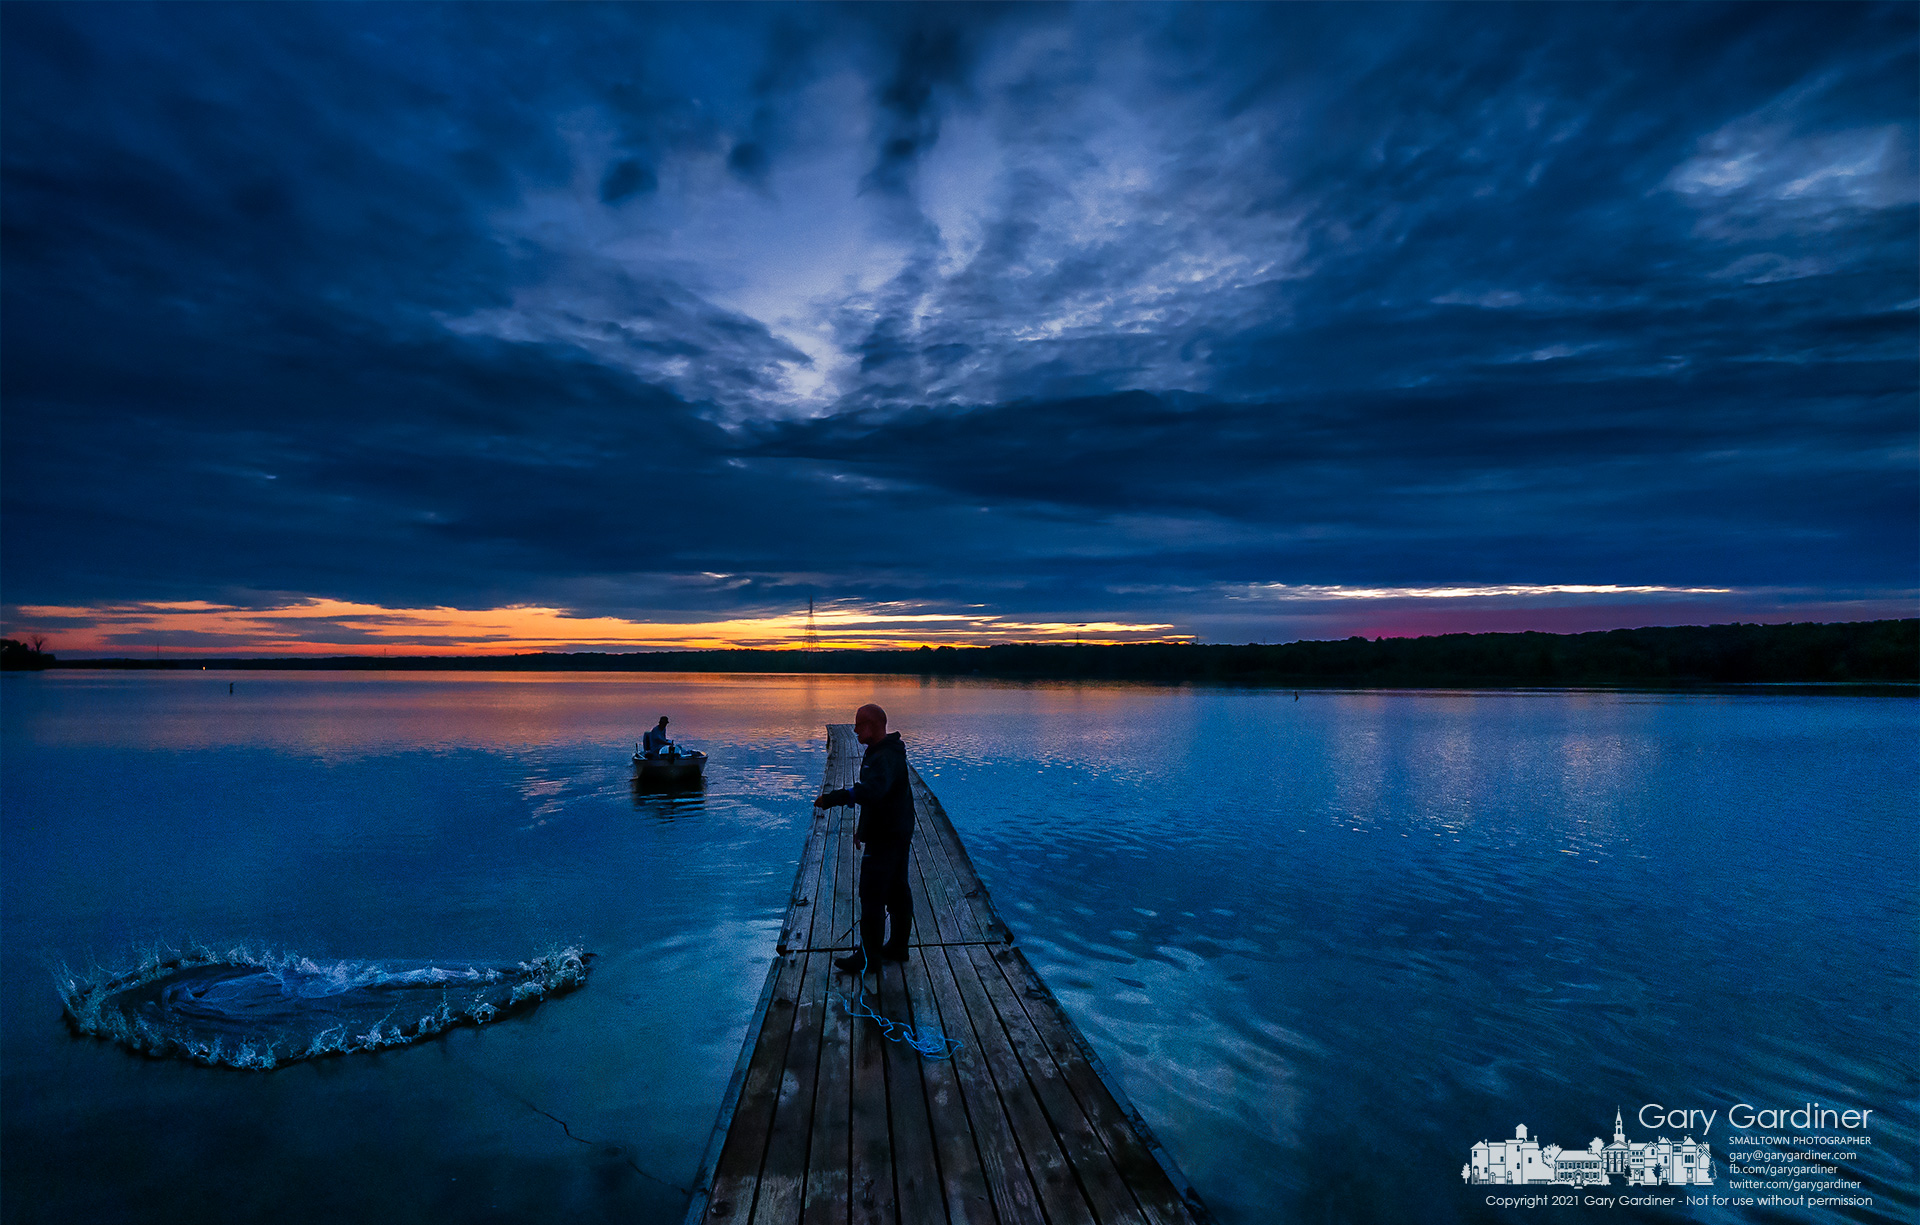 A fisherman casts for baitfish just before sunrise where he and his fishing companions prepared to launch a day of fishing dreams on Hoover Reservoir. My Final Photo for Sept. 4, 2021.